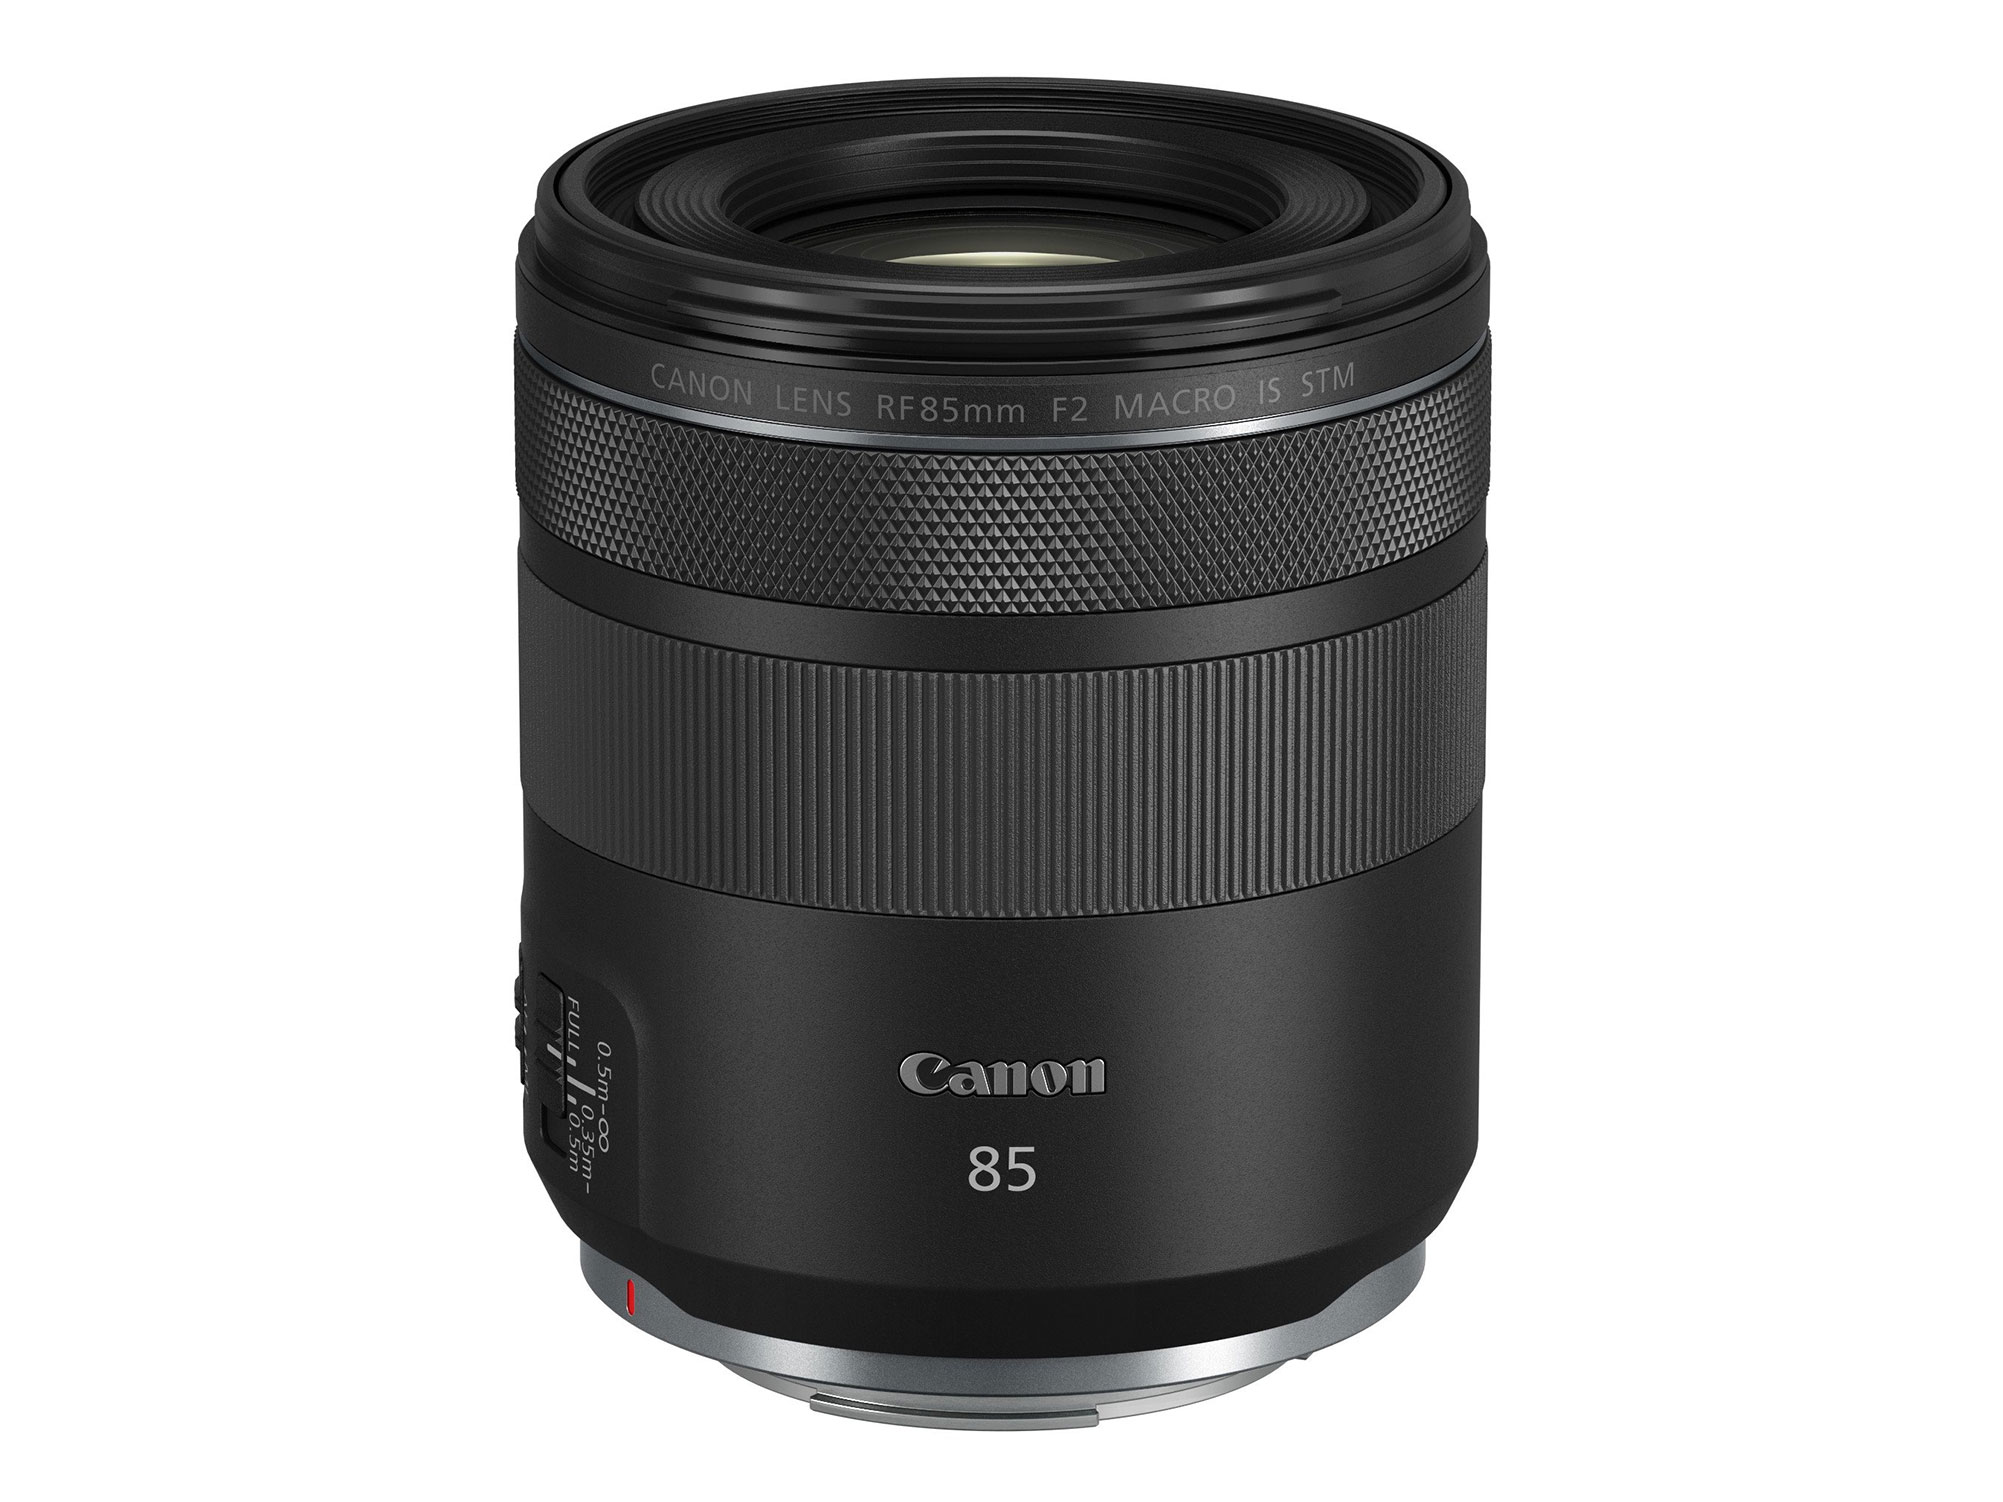 Canon RF 85mm f/2 Macro IS STM for EOS R Mirrorless Camera for Rent | RentSmart Asia | Renting Is The New Buying